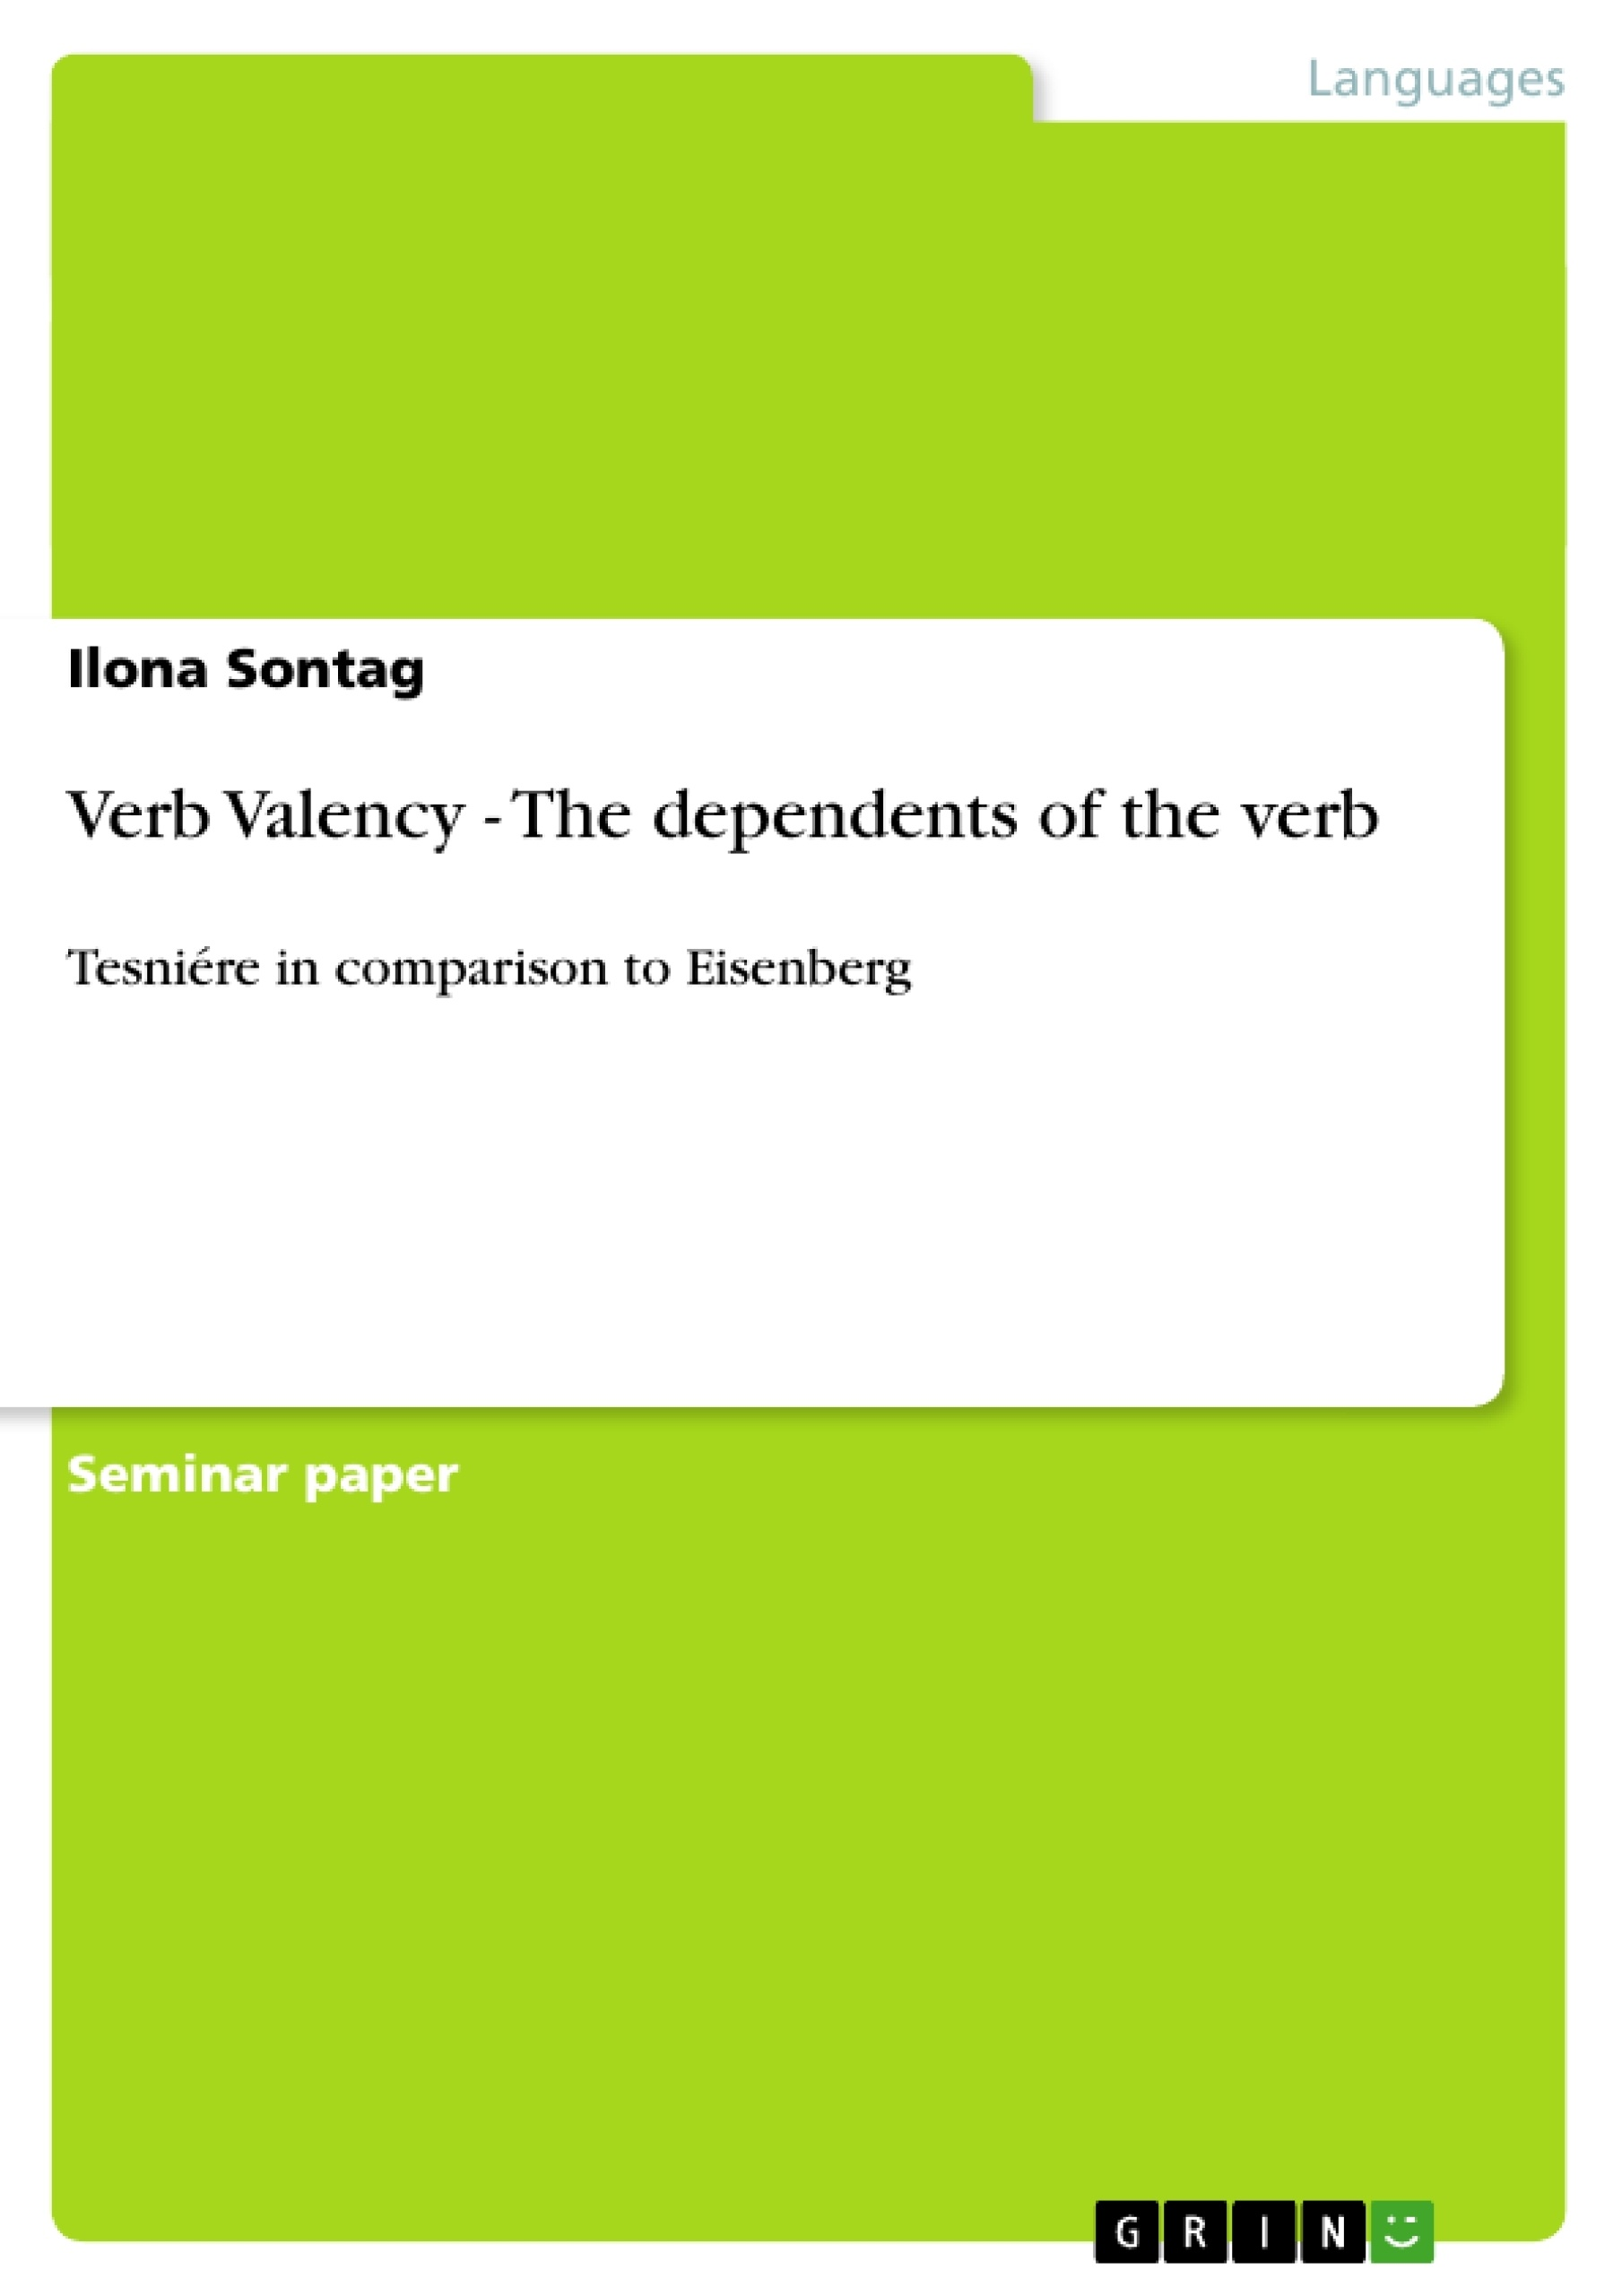 Title: Verb Valency - The dependents of the verb